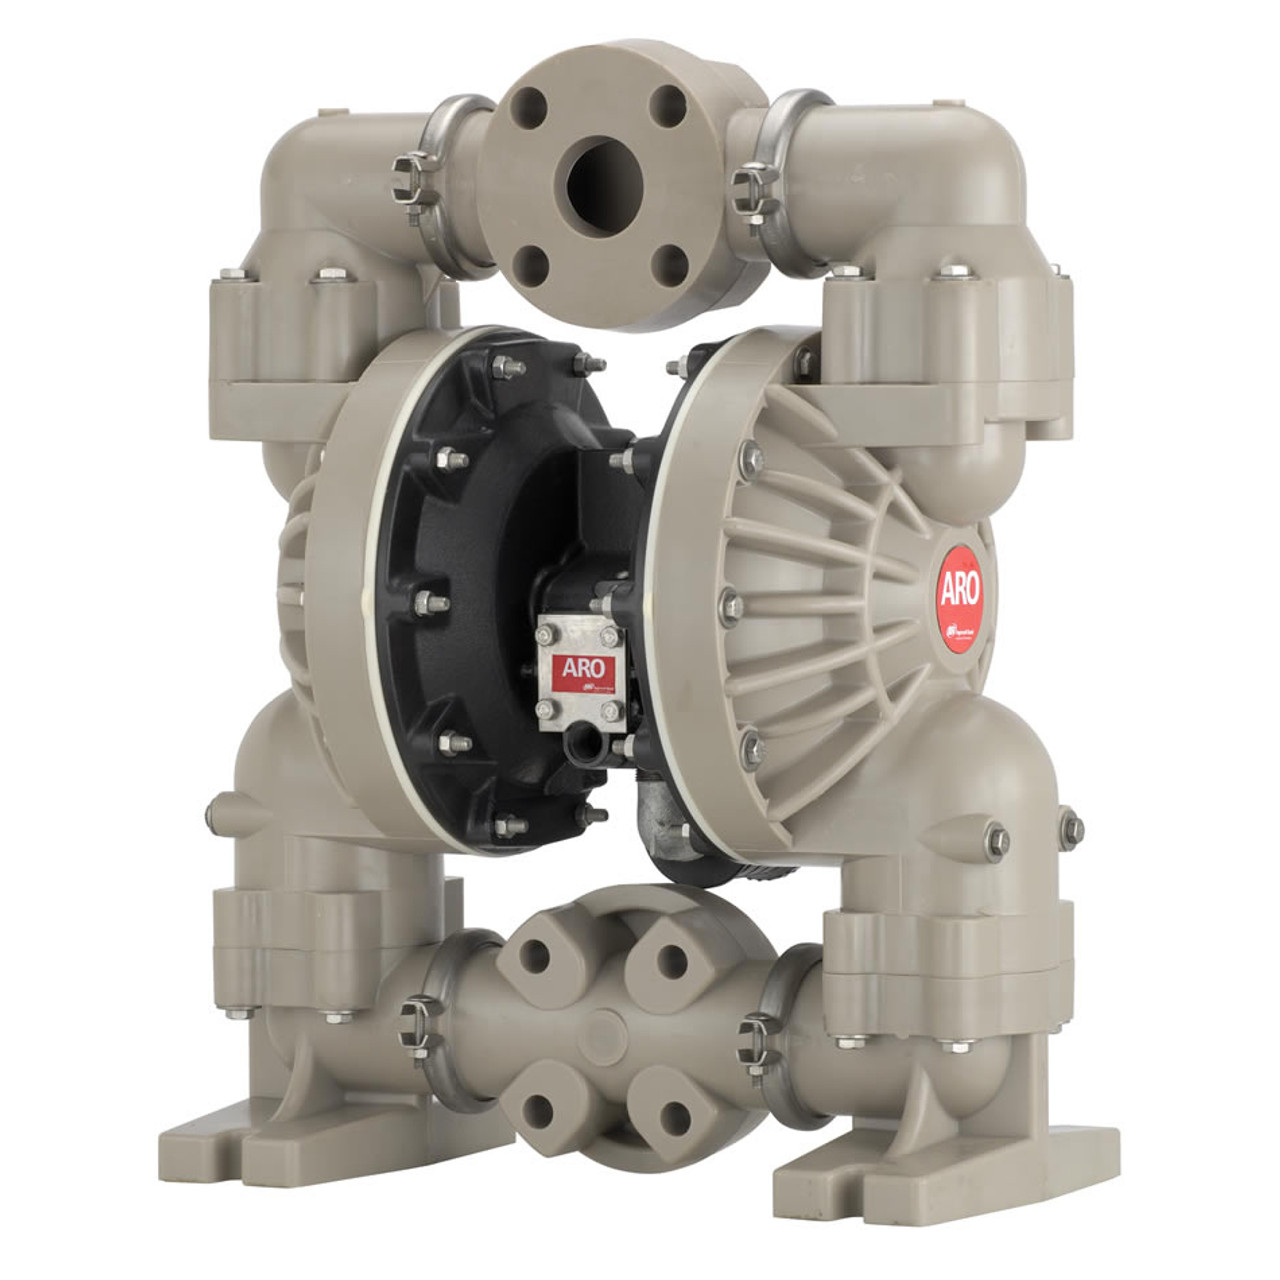 Aro pro series 2 in pvdf non metallic air operated diaphragm pump aro pro series 2 in pvdf non metallic air operated diaphragm pump john m ellsworth co inc ccuart Images